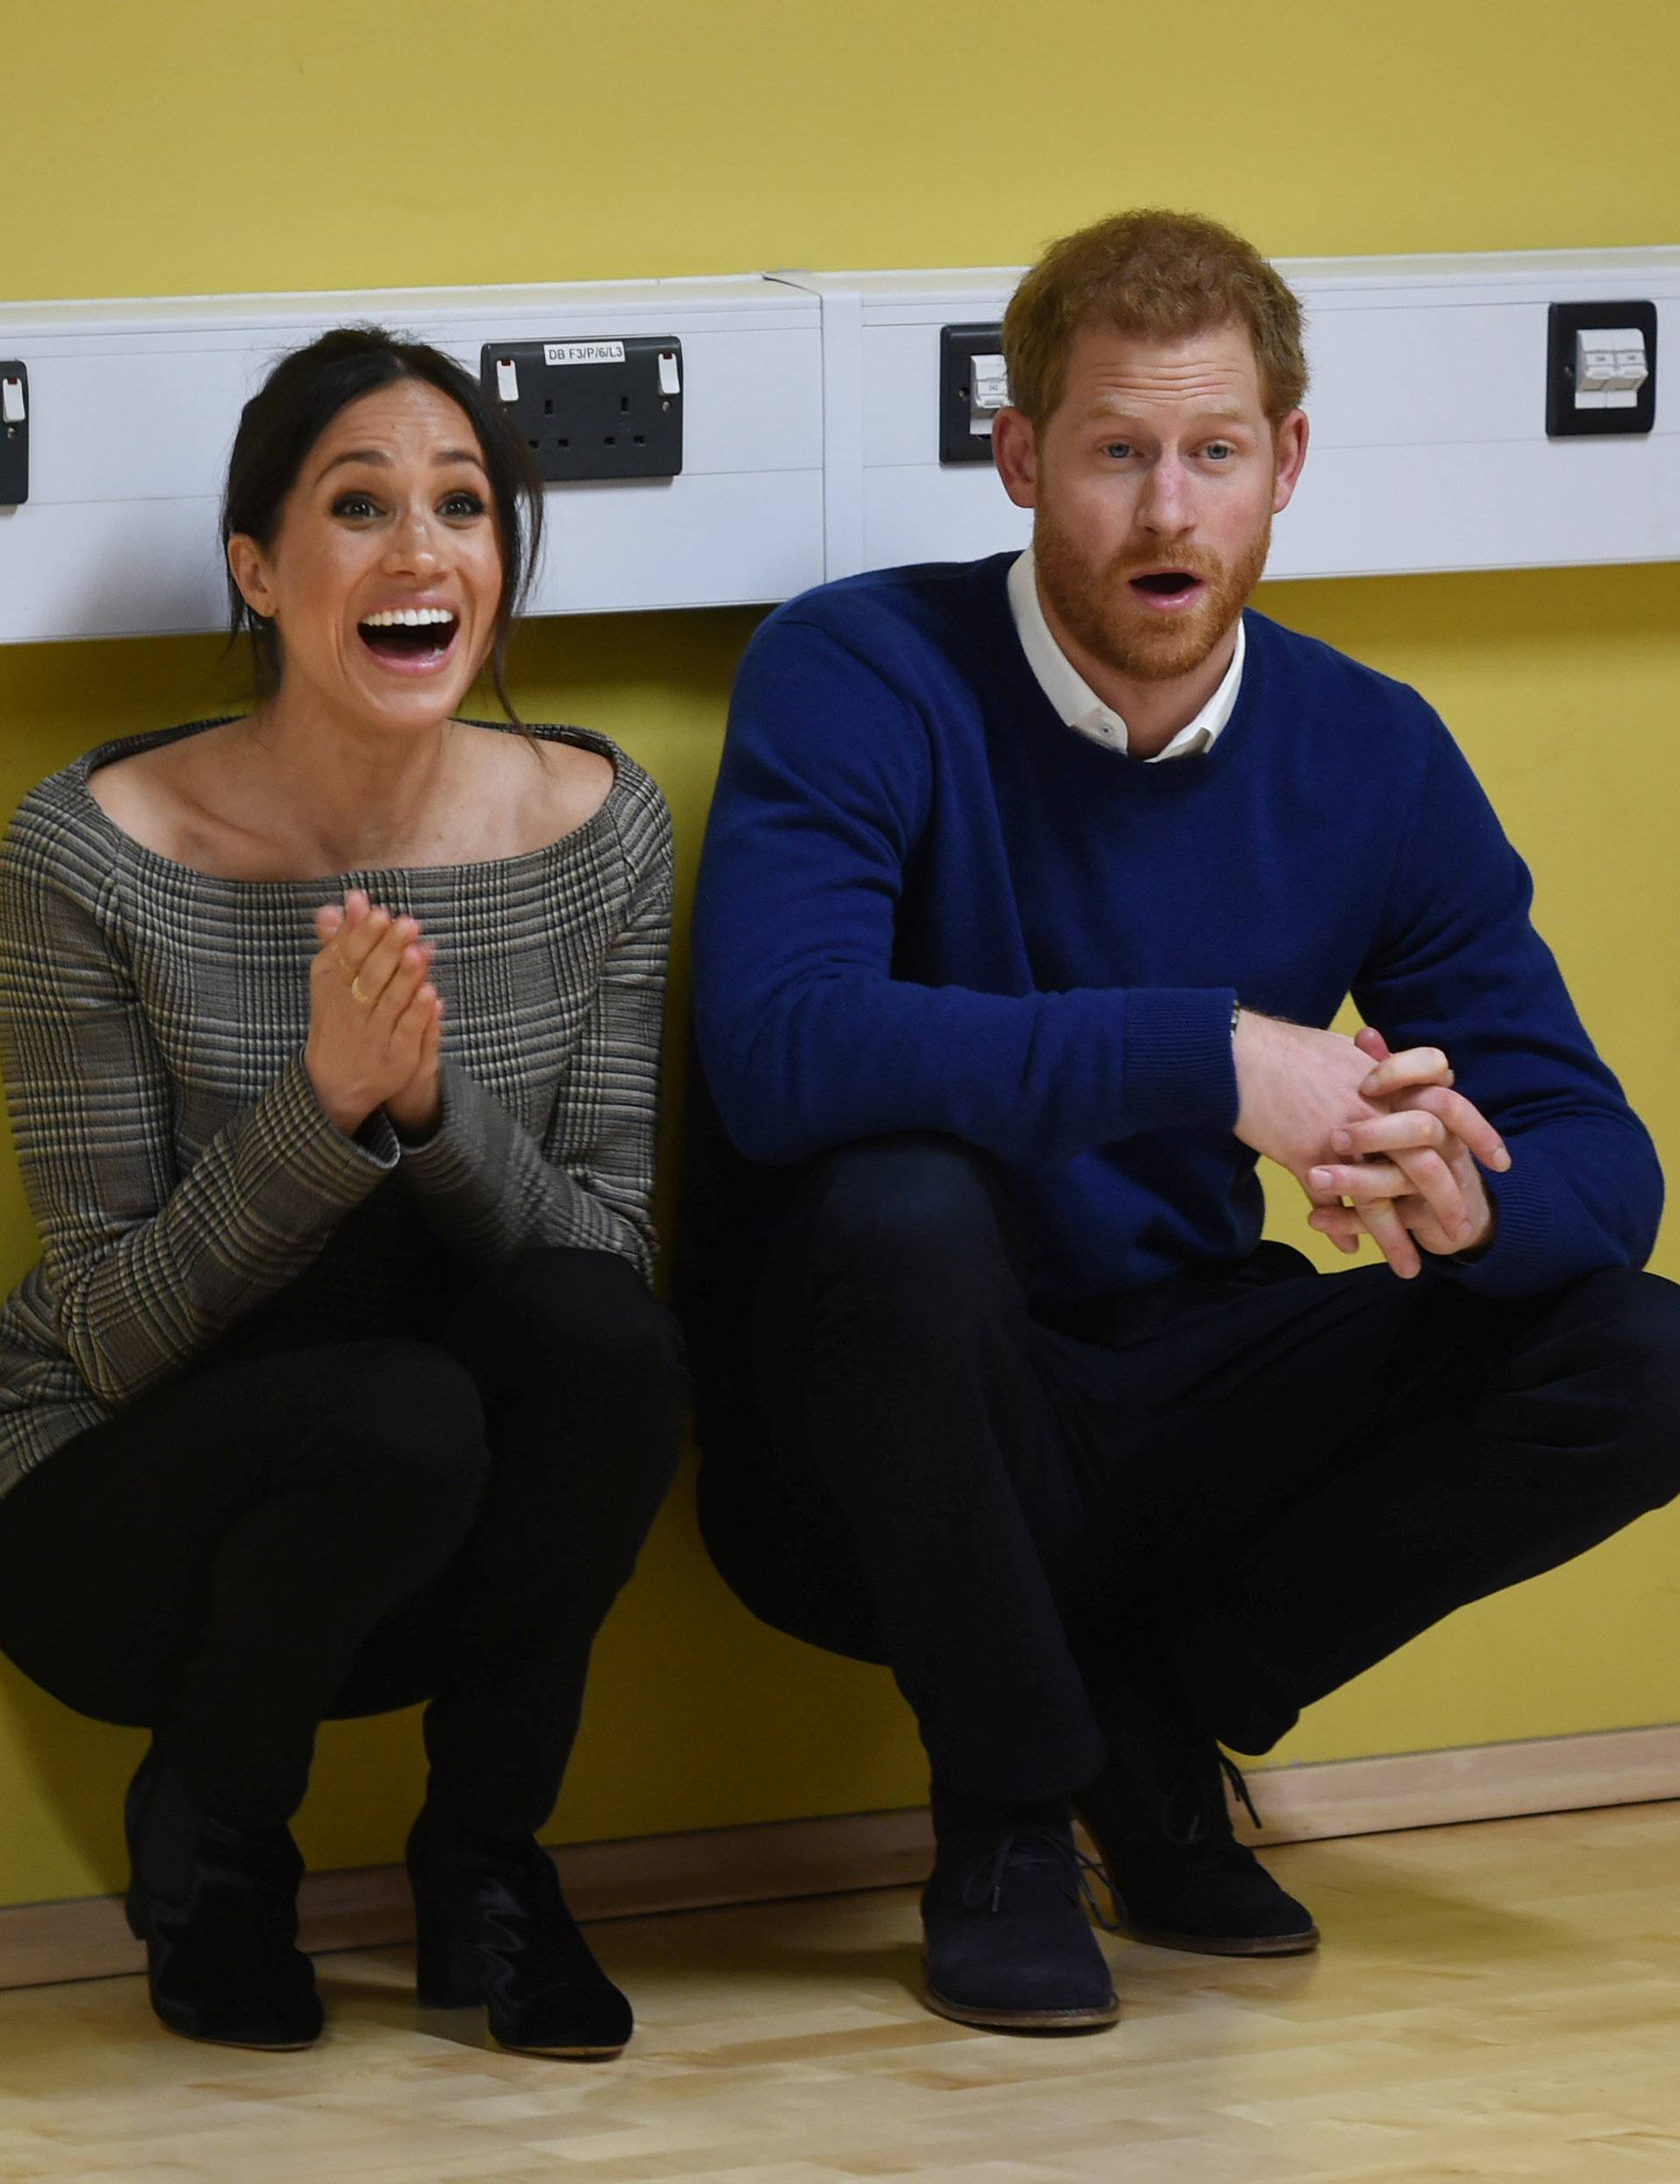 Britain's Prince Harry and his fiancee Meghan Markle watch a street dance class during their visit to Star Hub, a community and leisure centre, in Cardiff